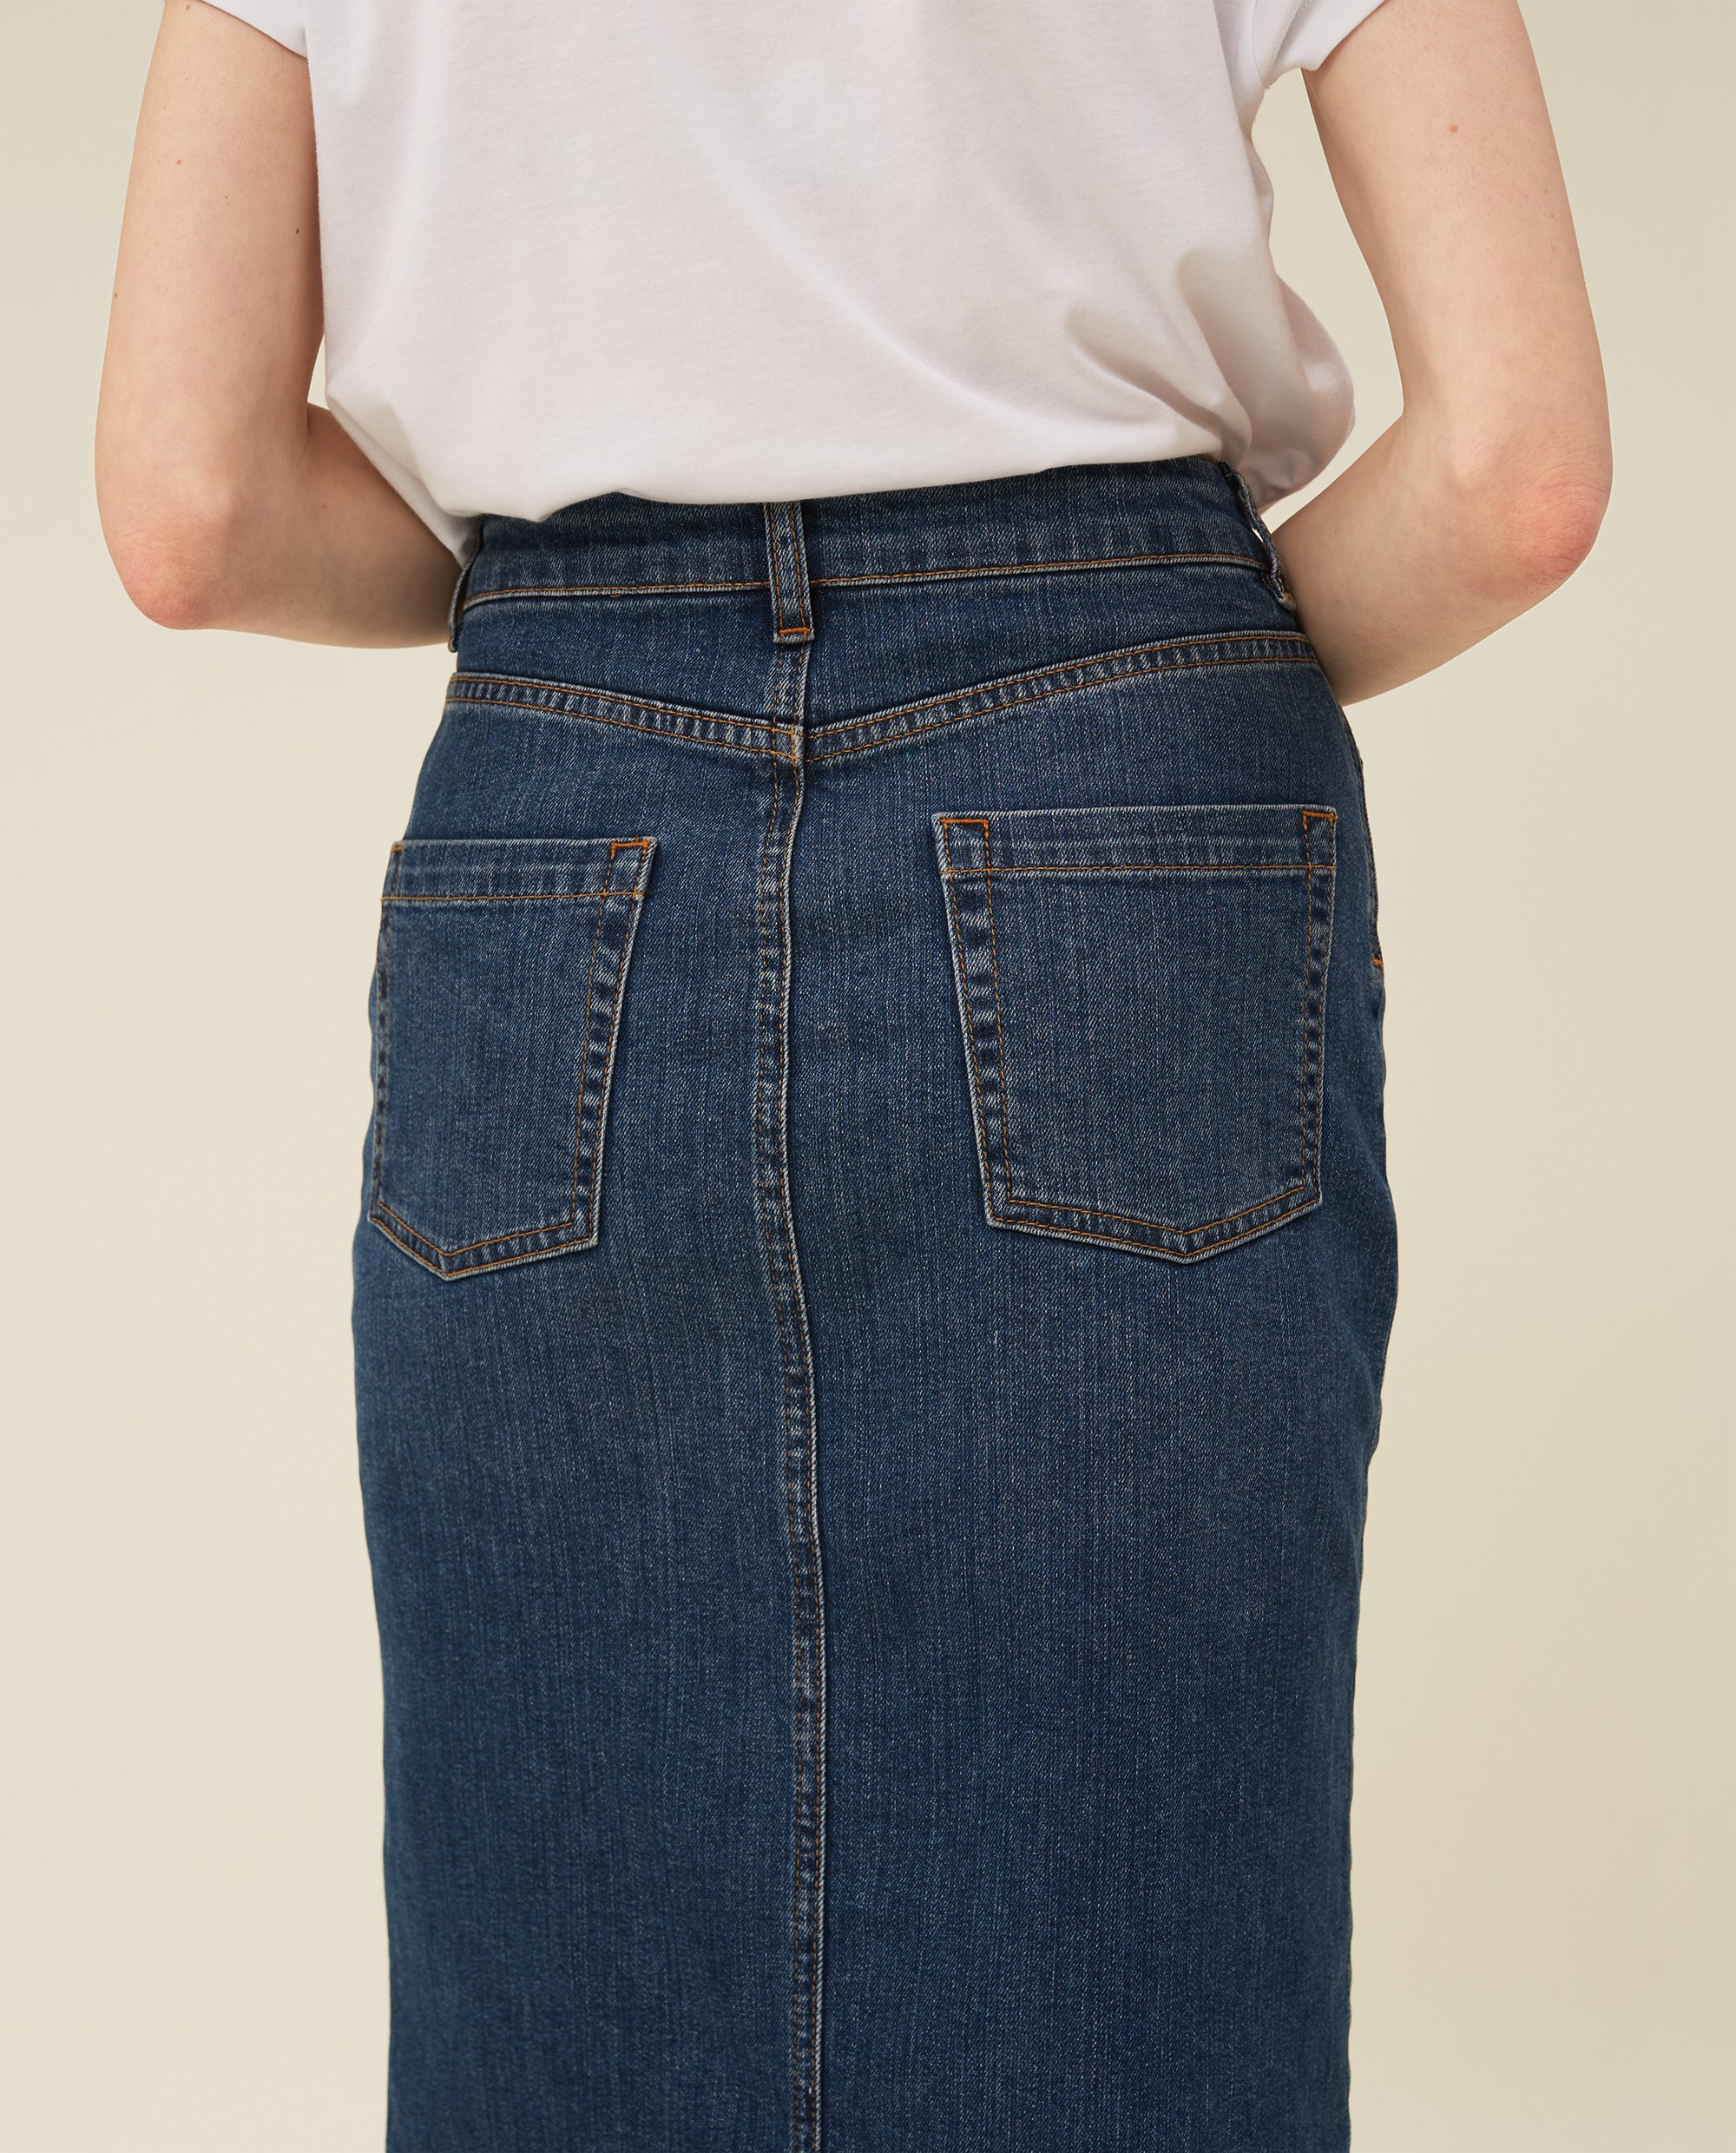 Millie Denim Skirt